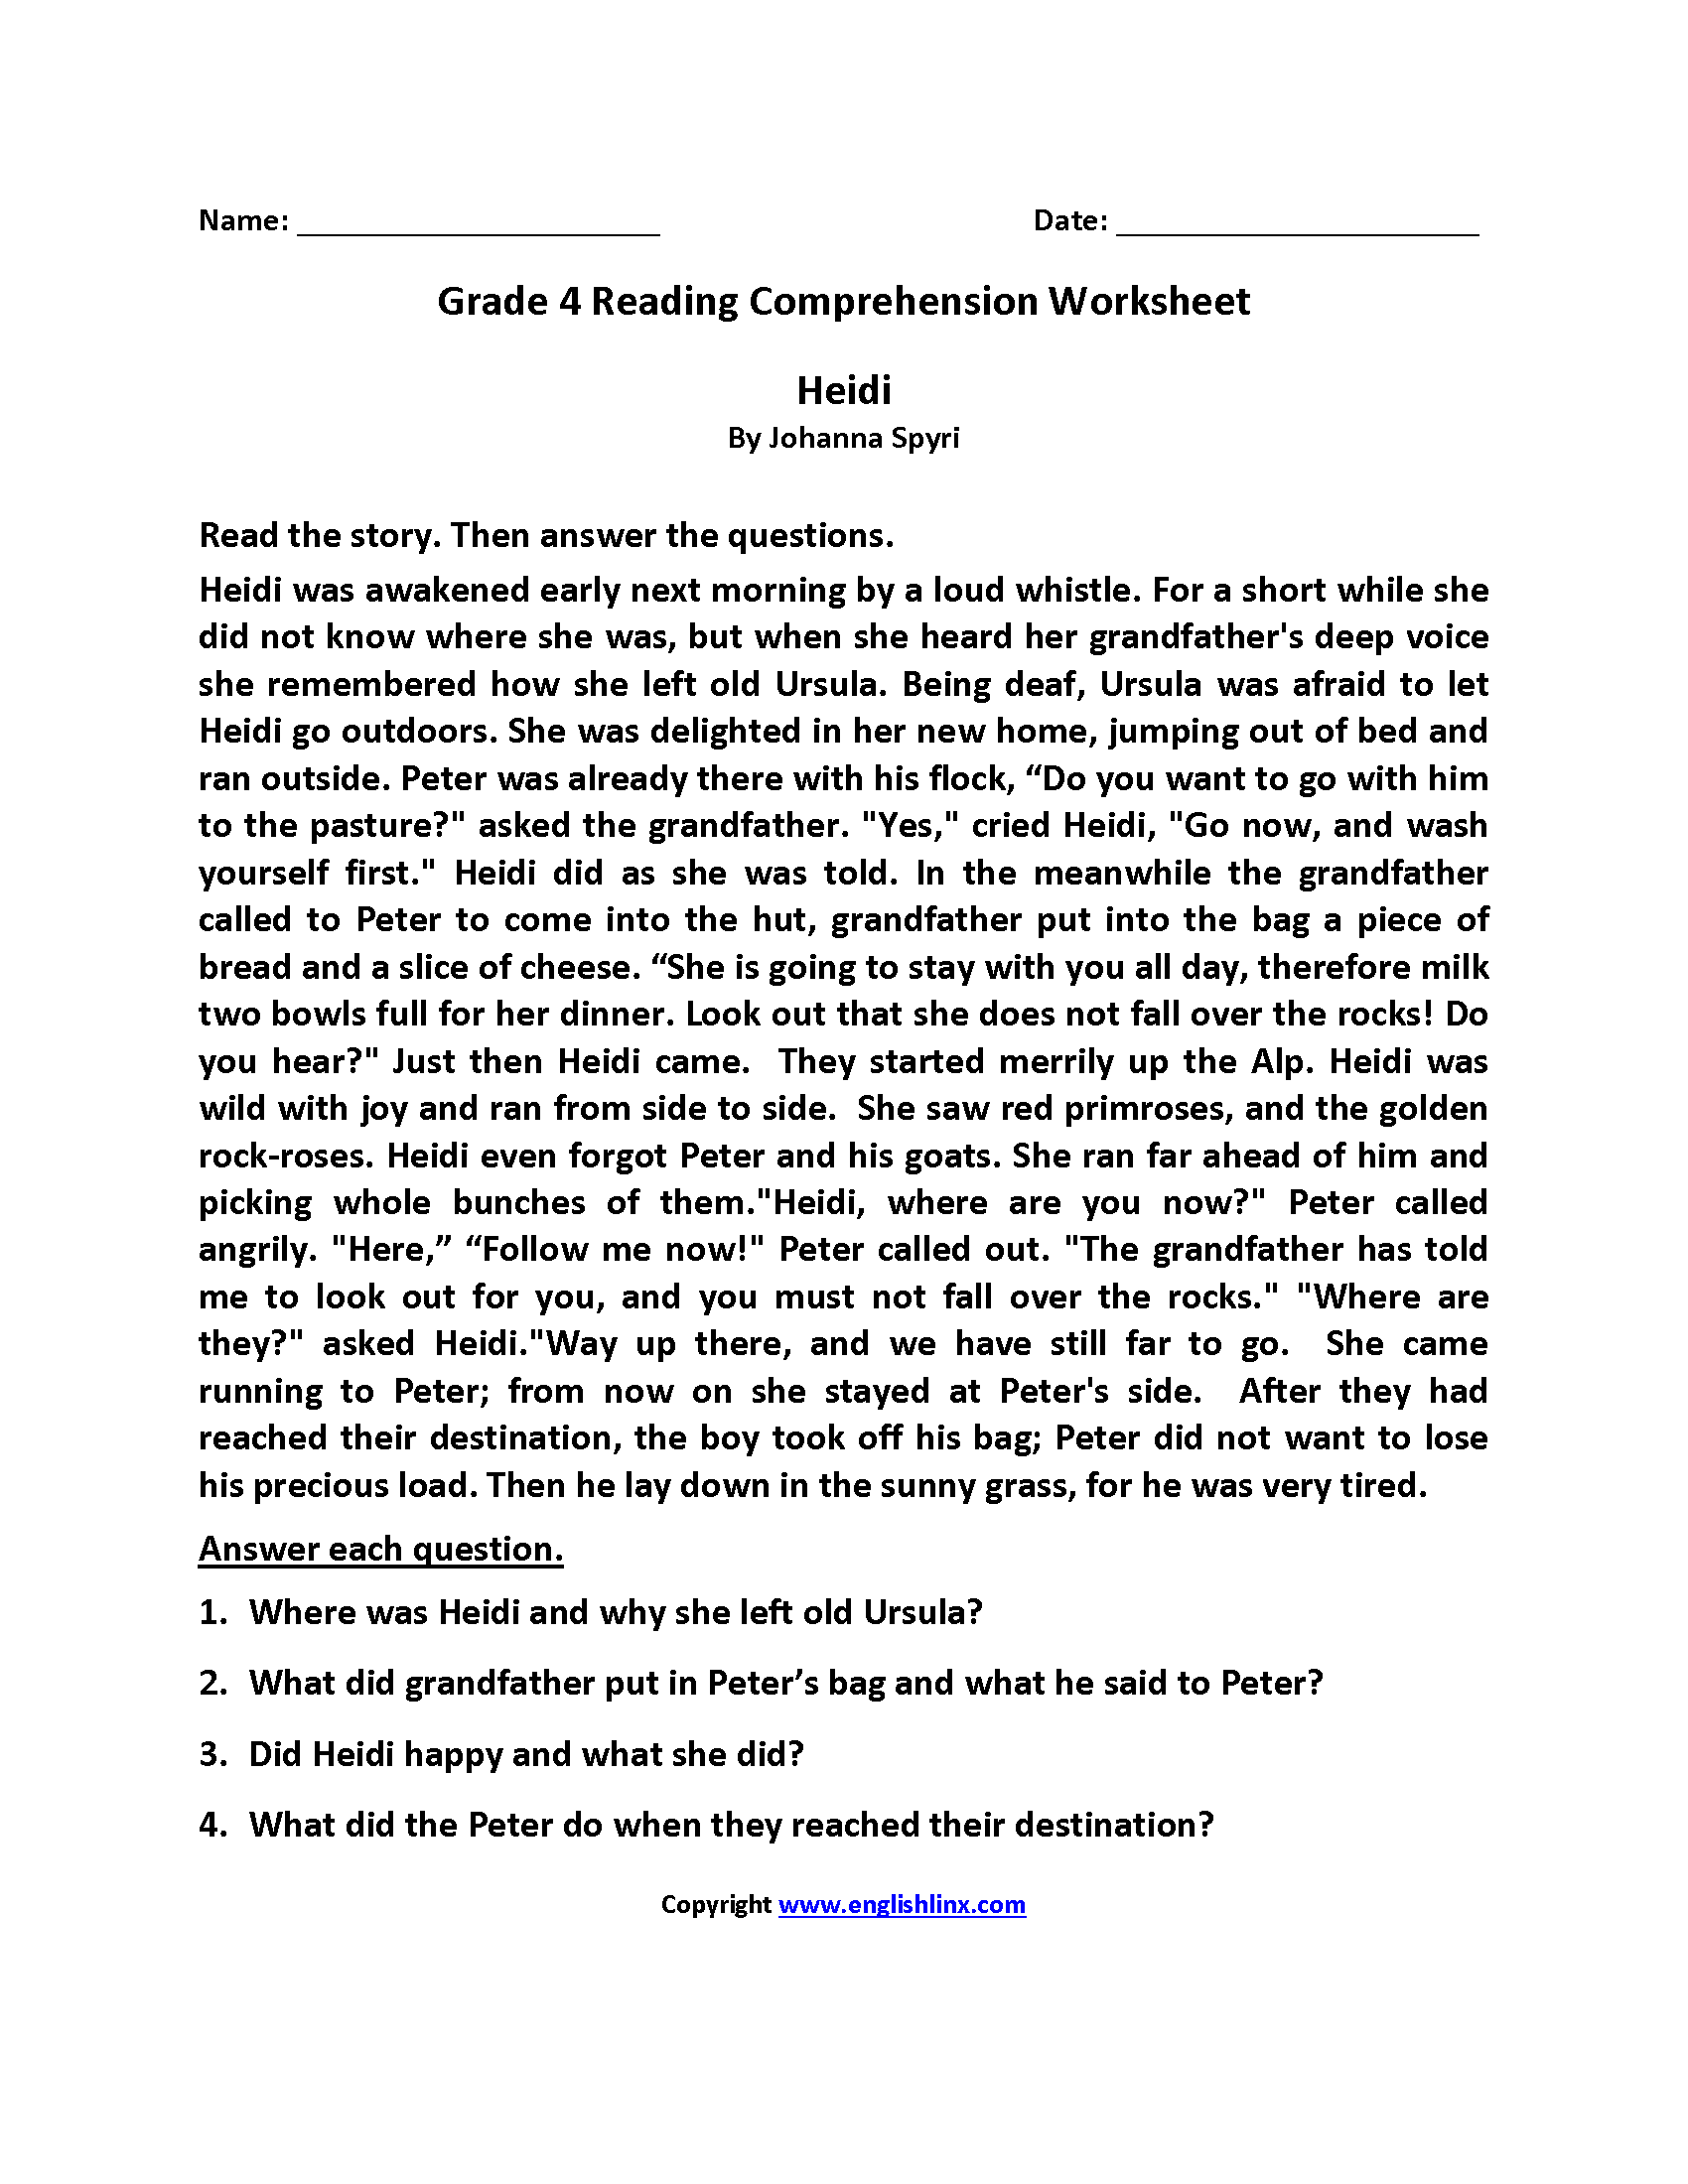 Heidi Fourth Grade Reading Worksheets